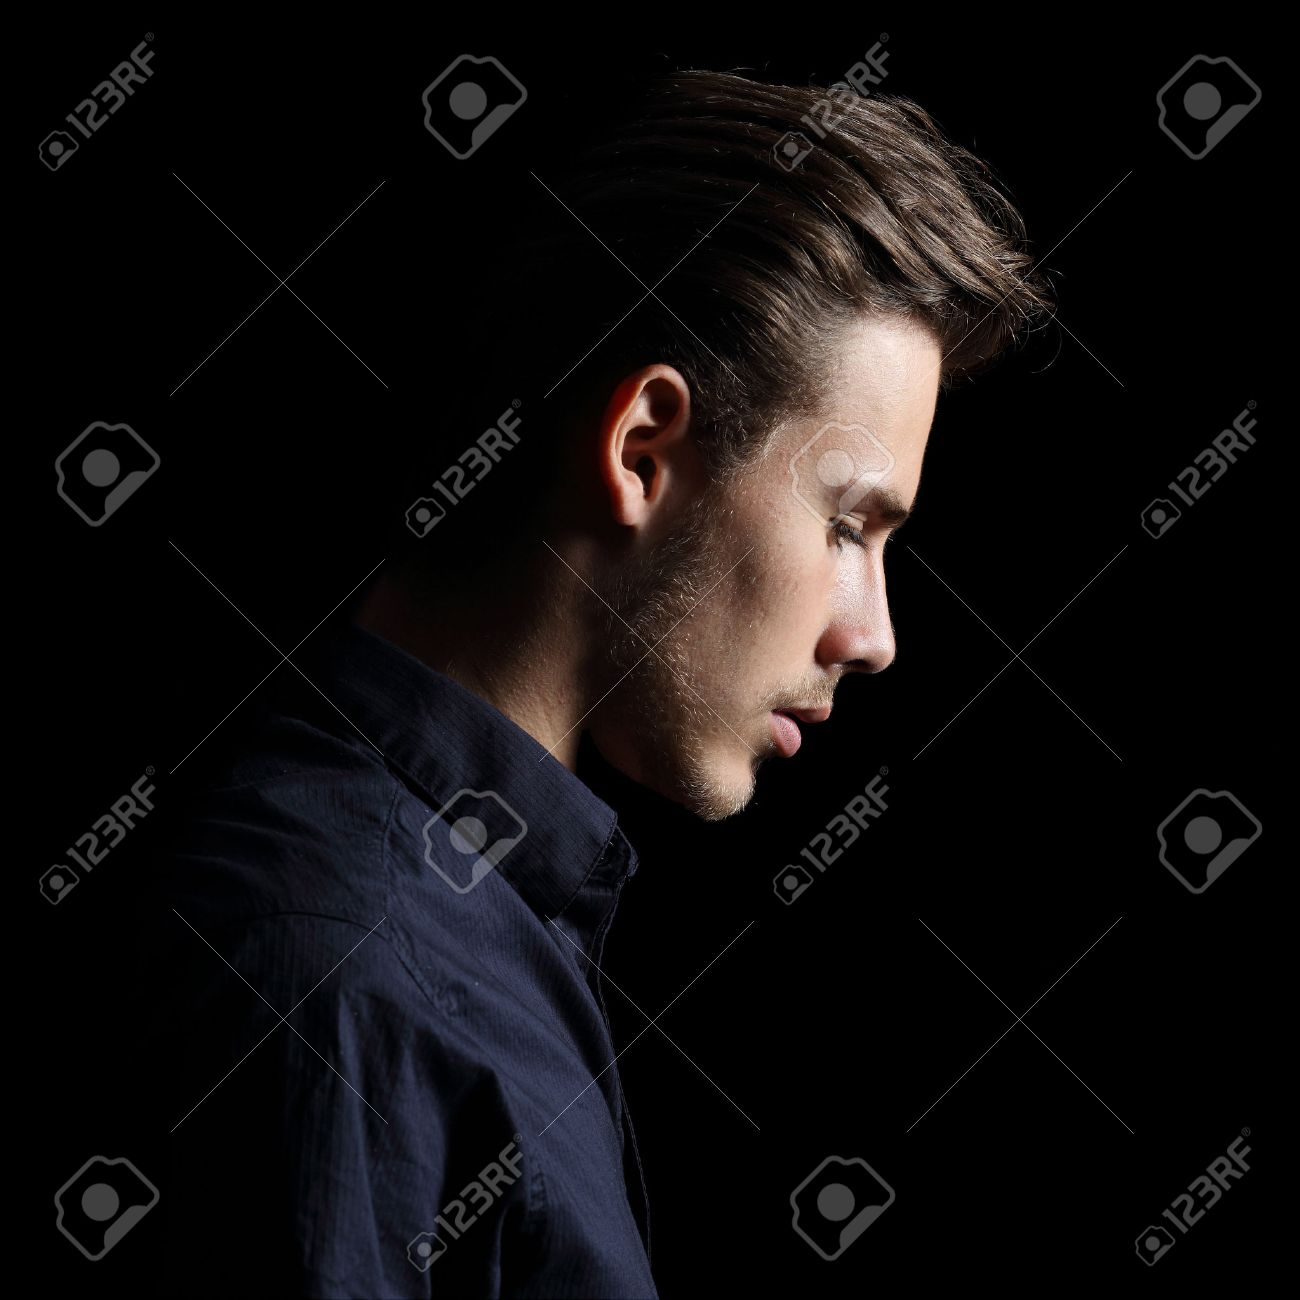 Profile of a sad man face crestfallen on black isolated on a black background stock photo